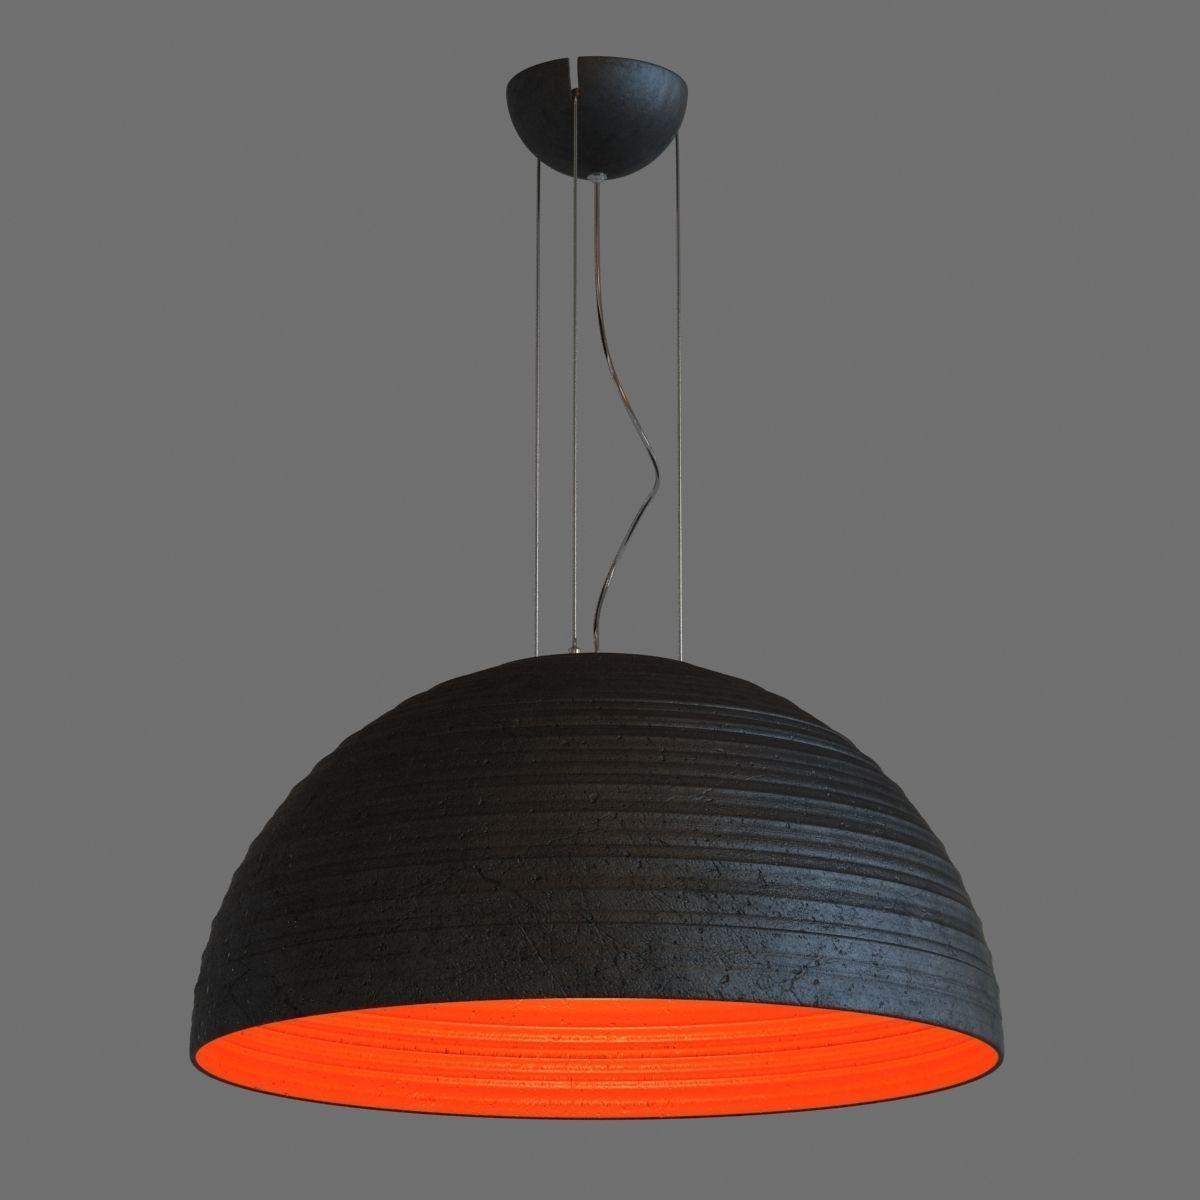 Notorius suspension dome light by toscot 3d model max obj fbx mtl notorius suspension dome light by toscot 3d model max obj fbx mtl unitypackage arubaitofo Gallery